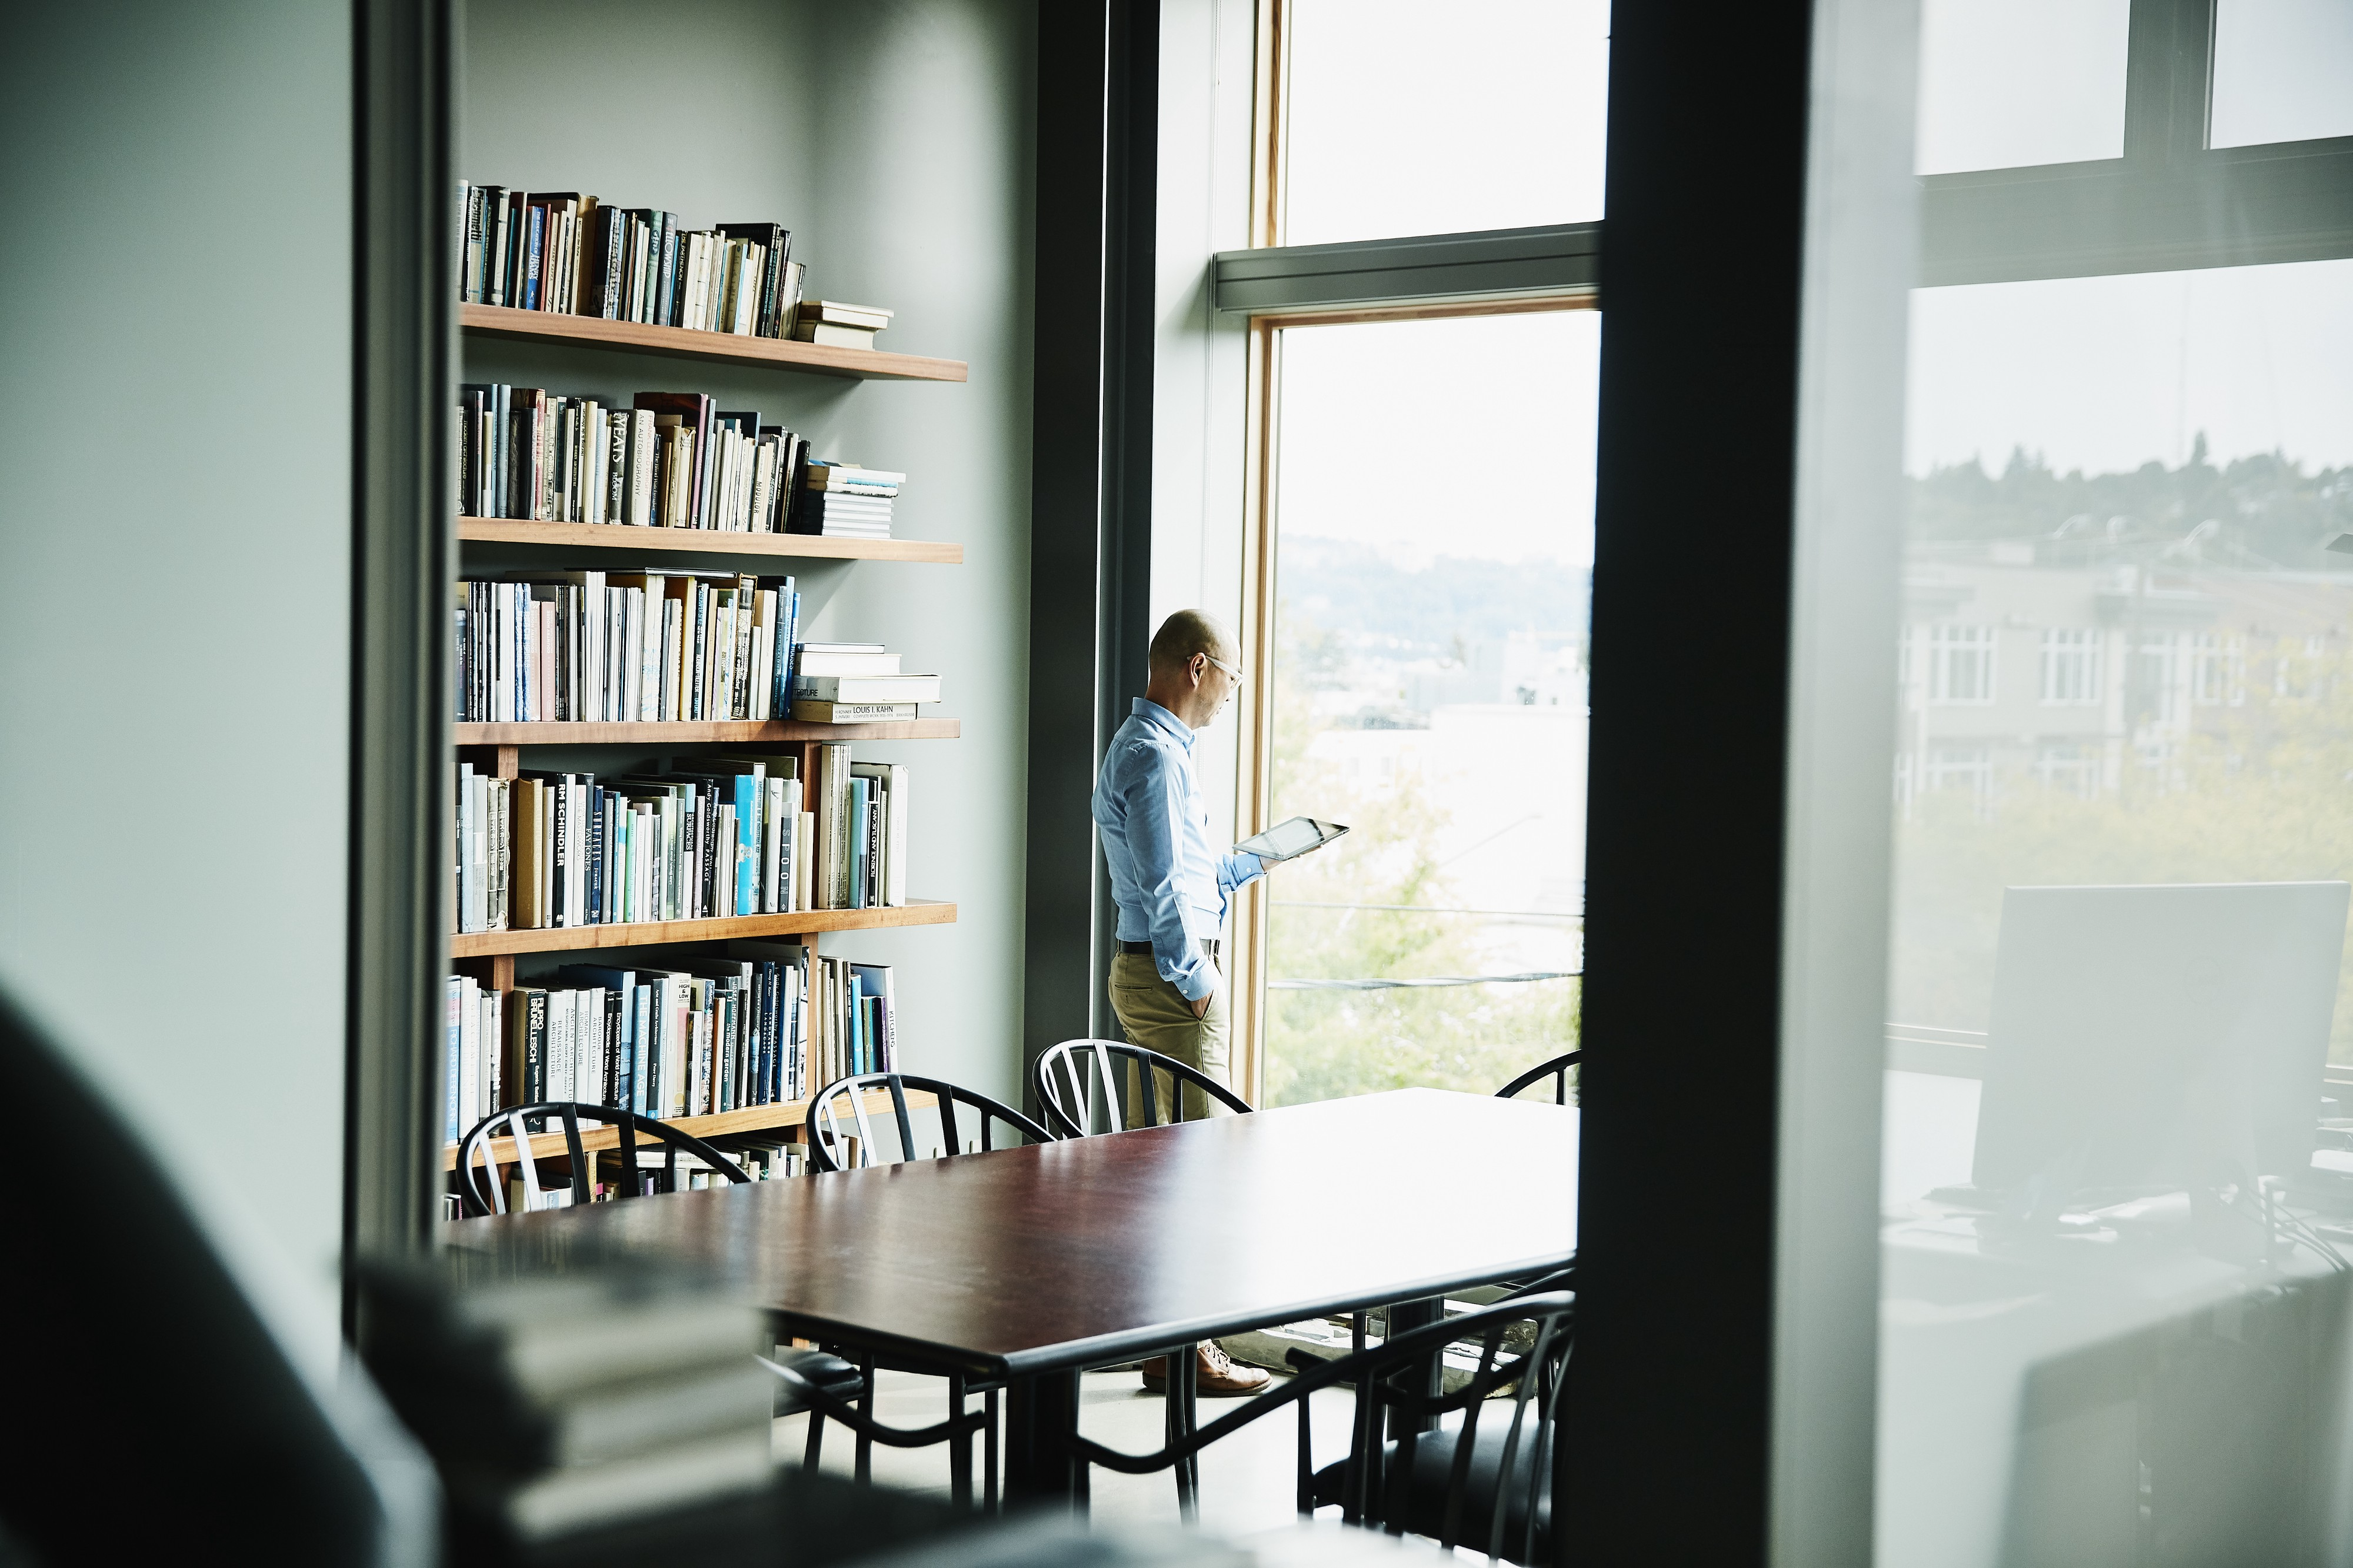 A businessman reading on his digital tablet while standing near a window, next to his filled bookshelves.